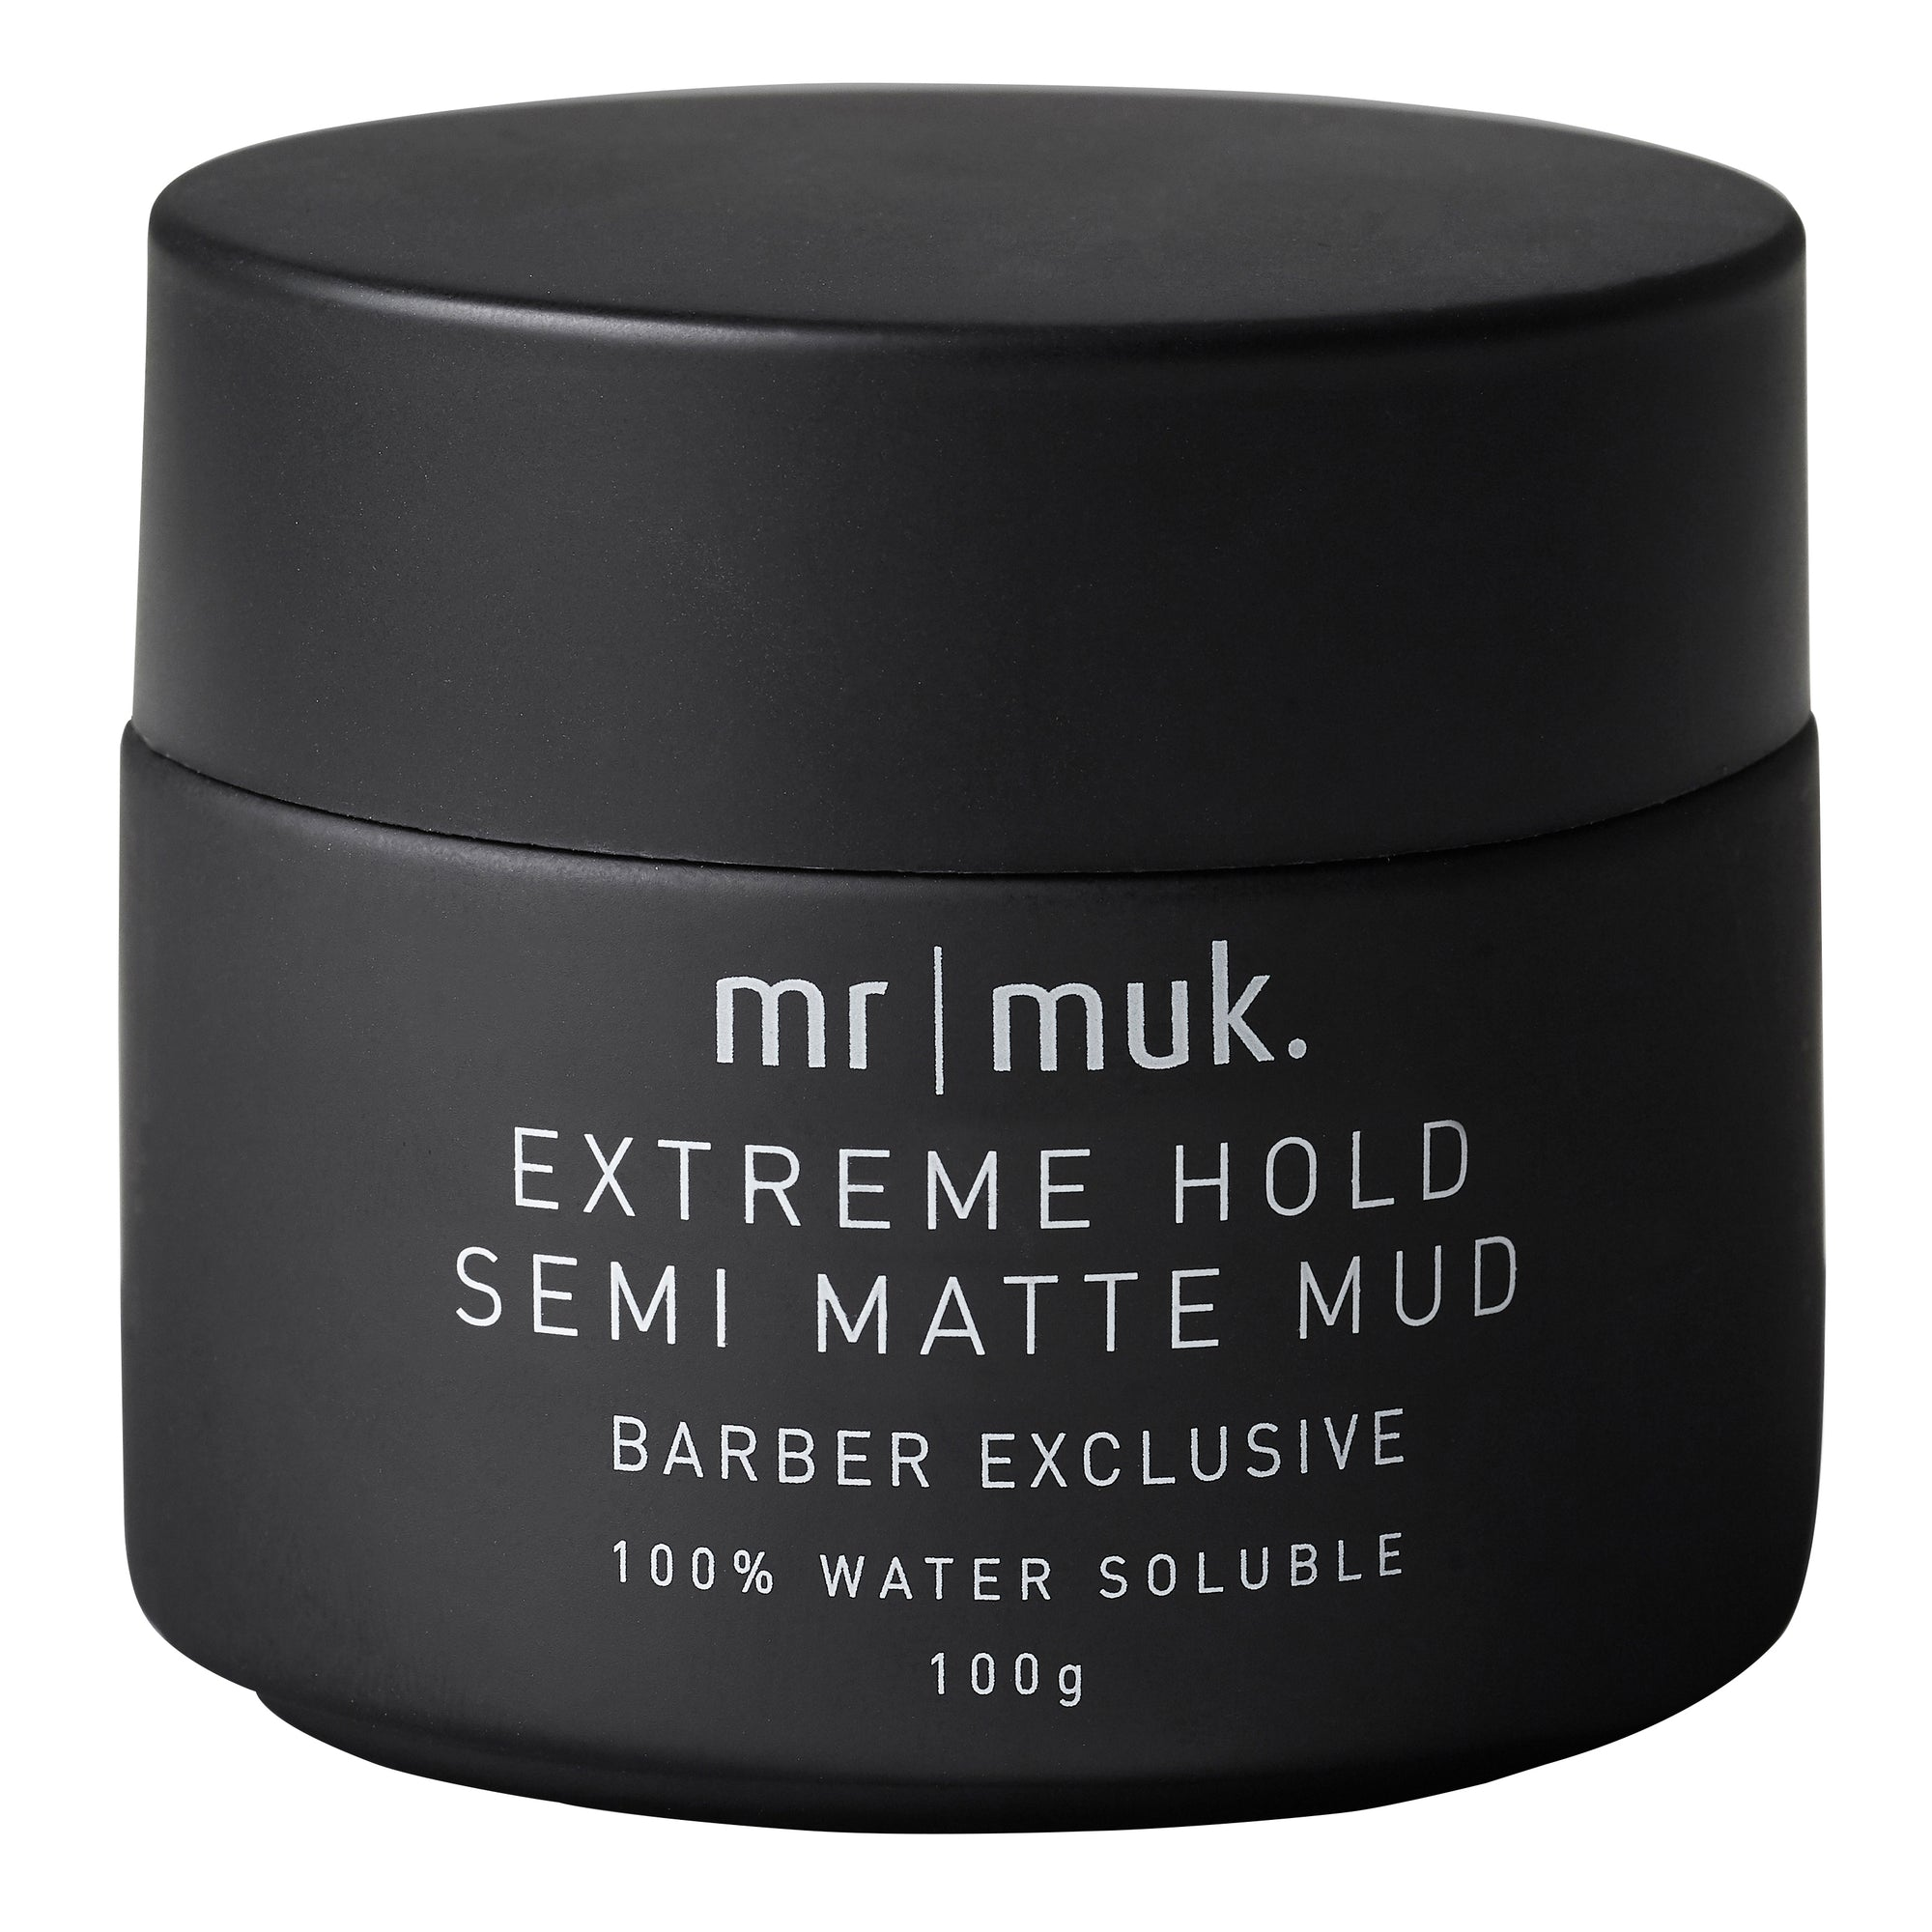 EXTREME HOLD SEMI MATTE MUD